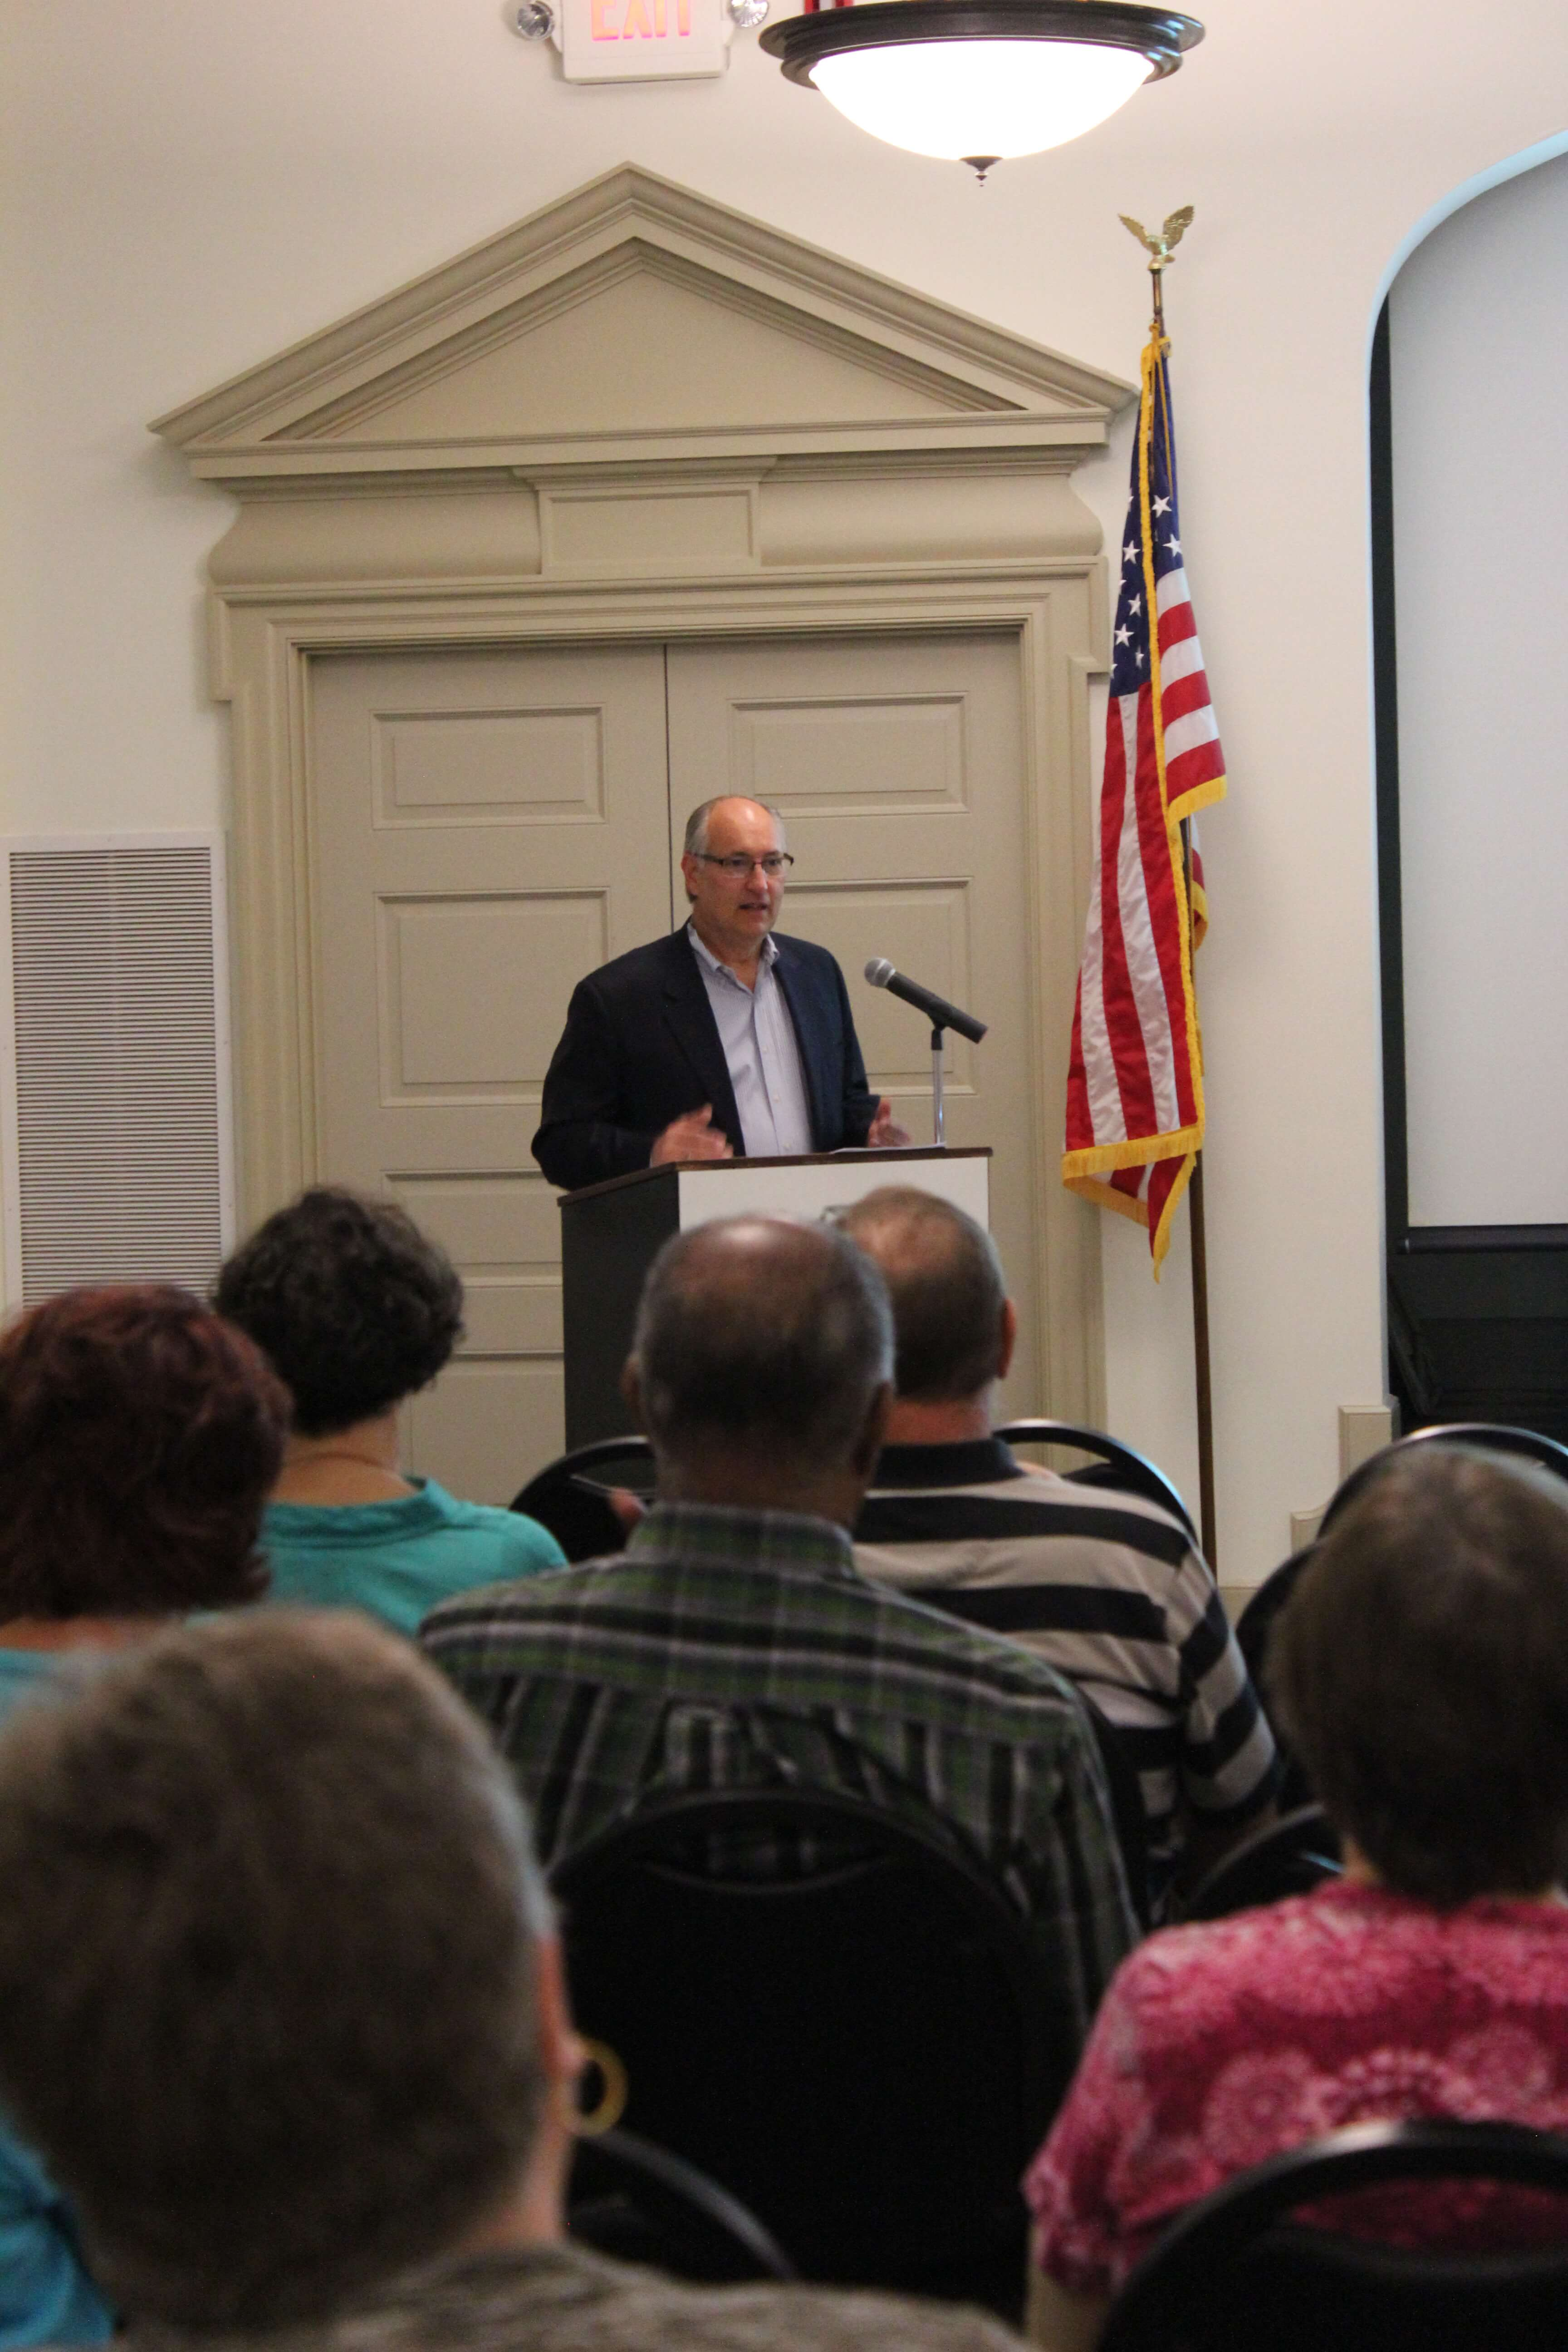 Image: Attorney Hershner speaking to a group at the York County History Center